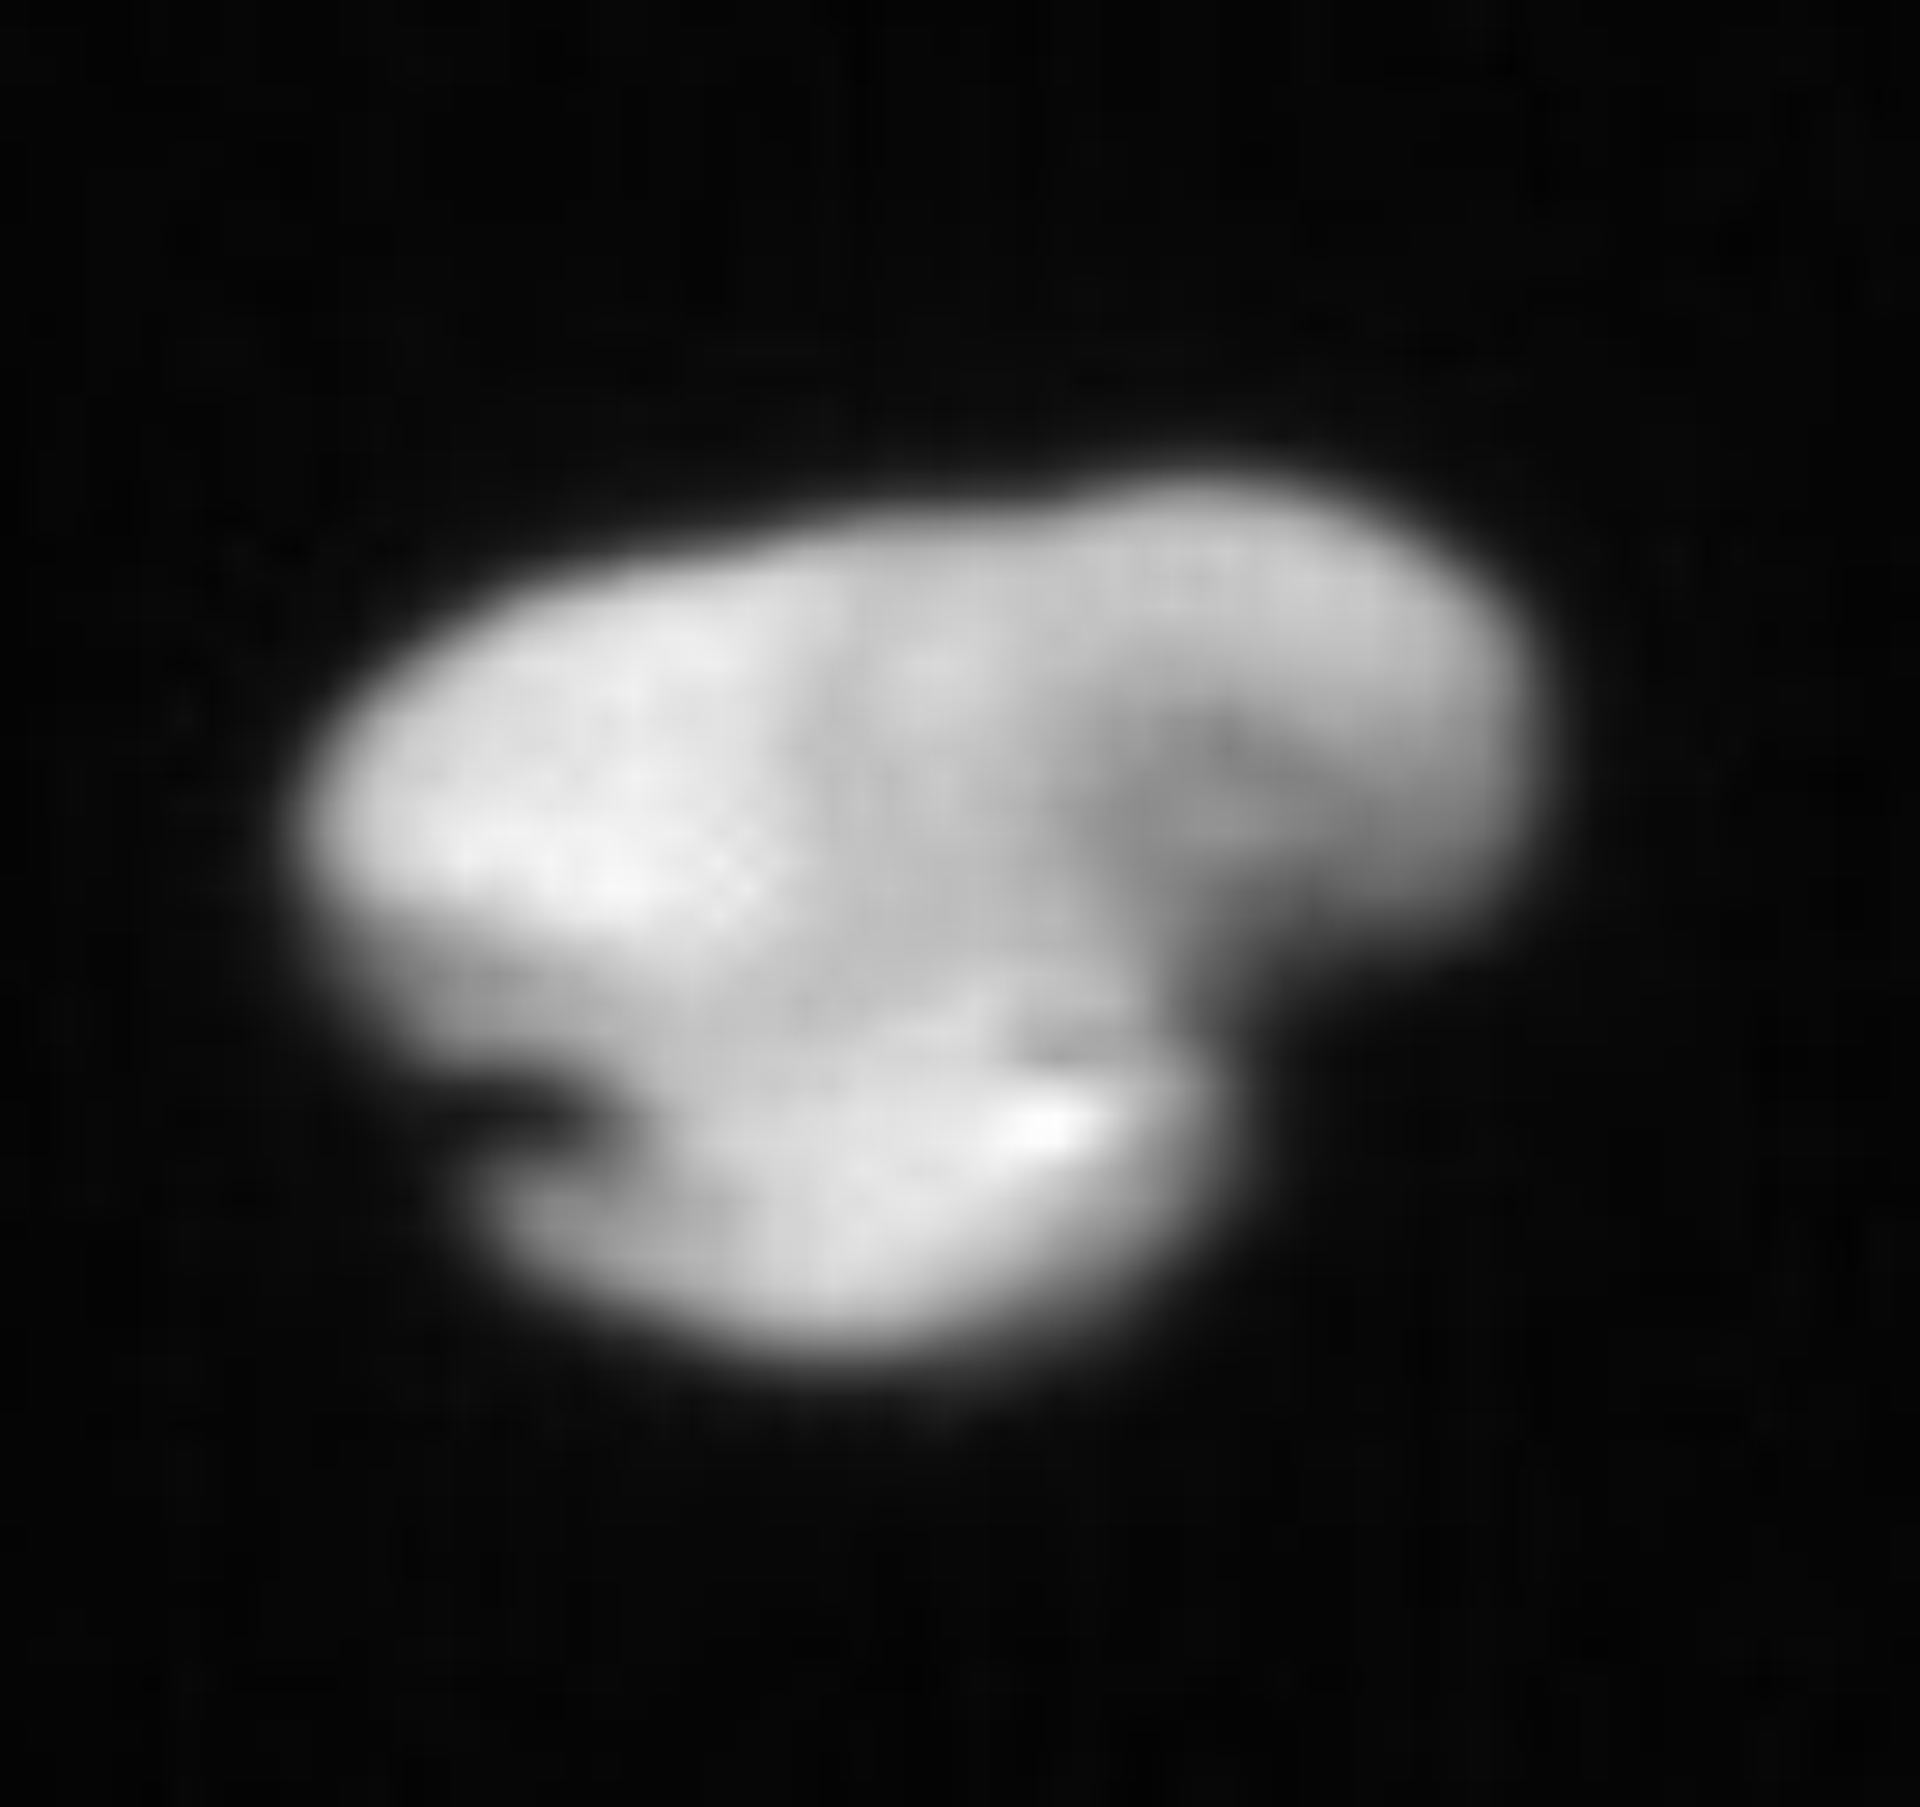 Hydra Moon: Latest Images From Pluto